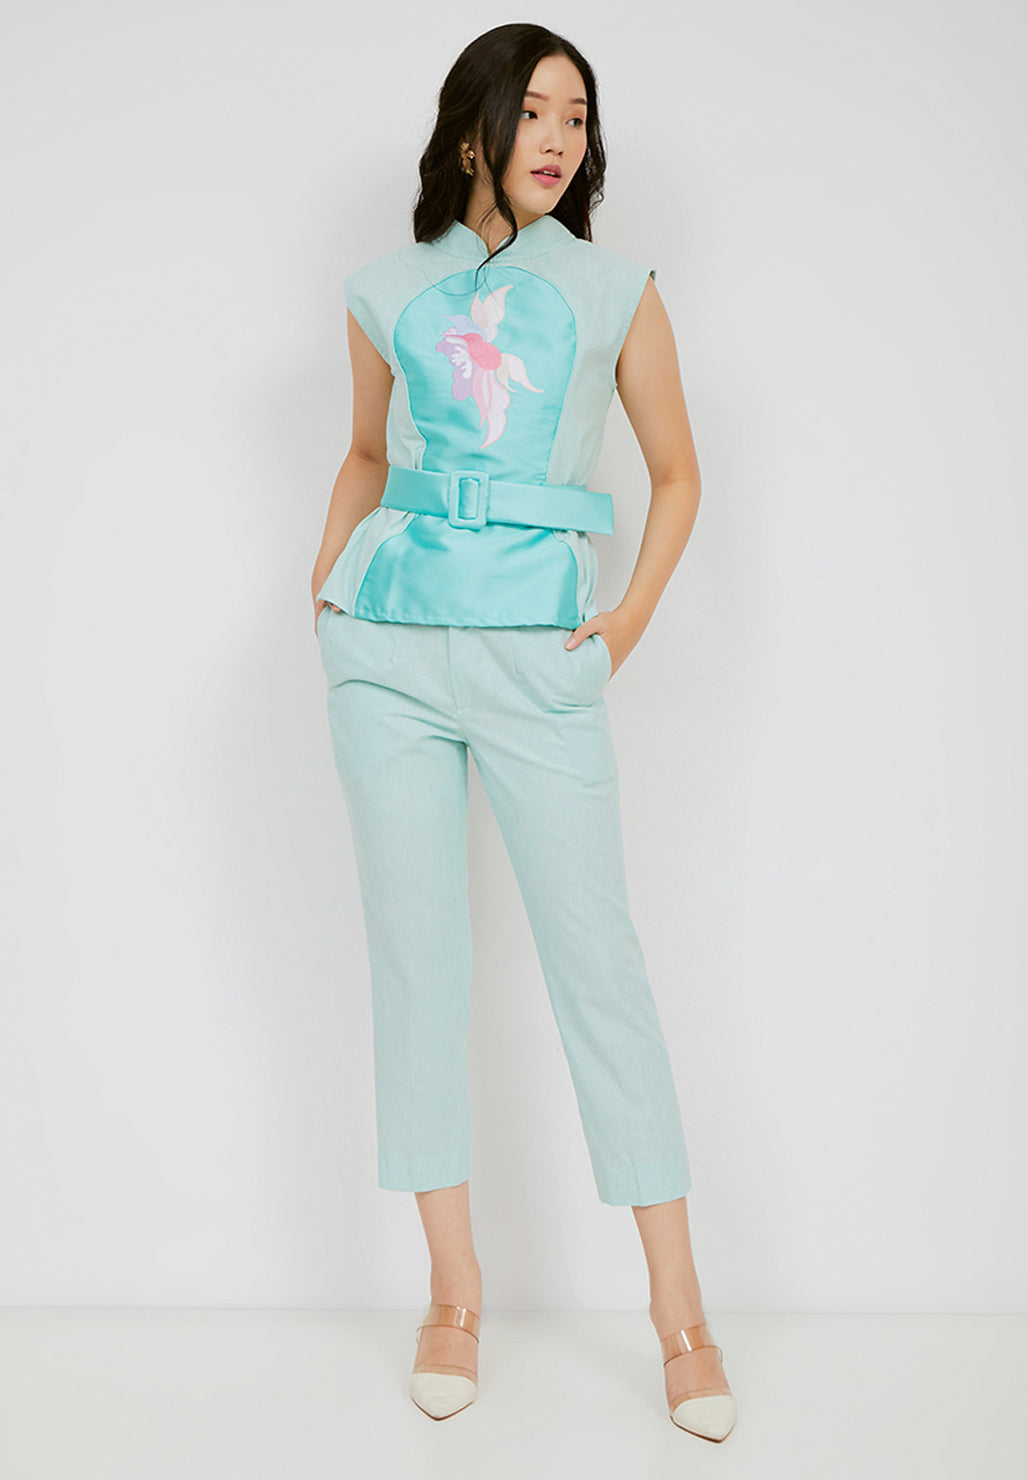 SONGBIRDS Illusion Top Mint